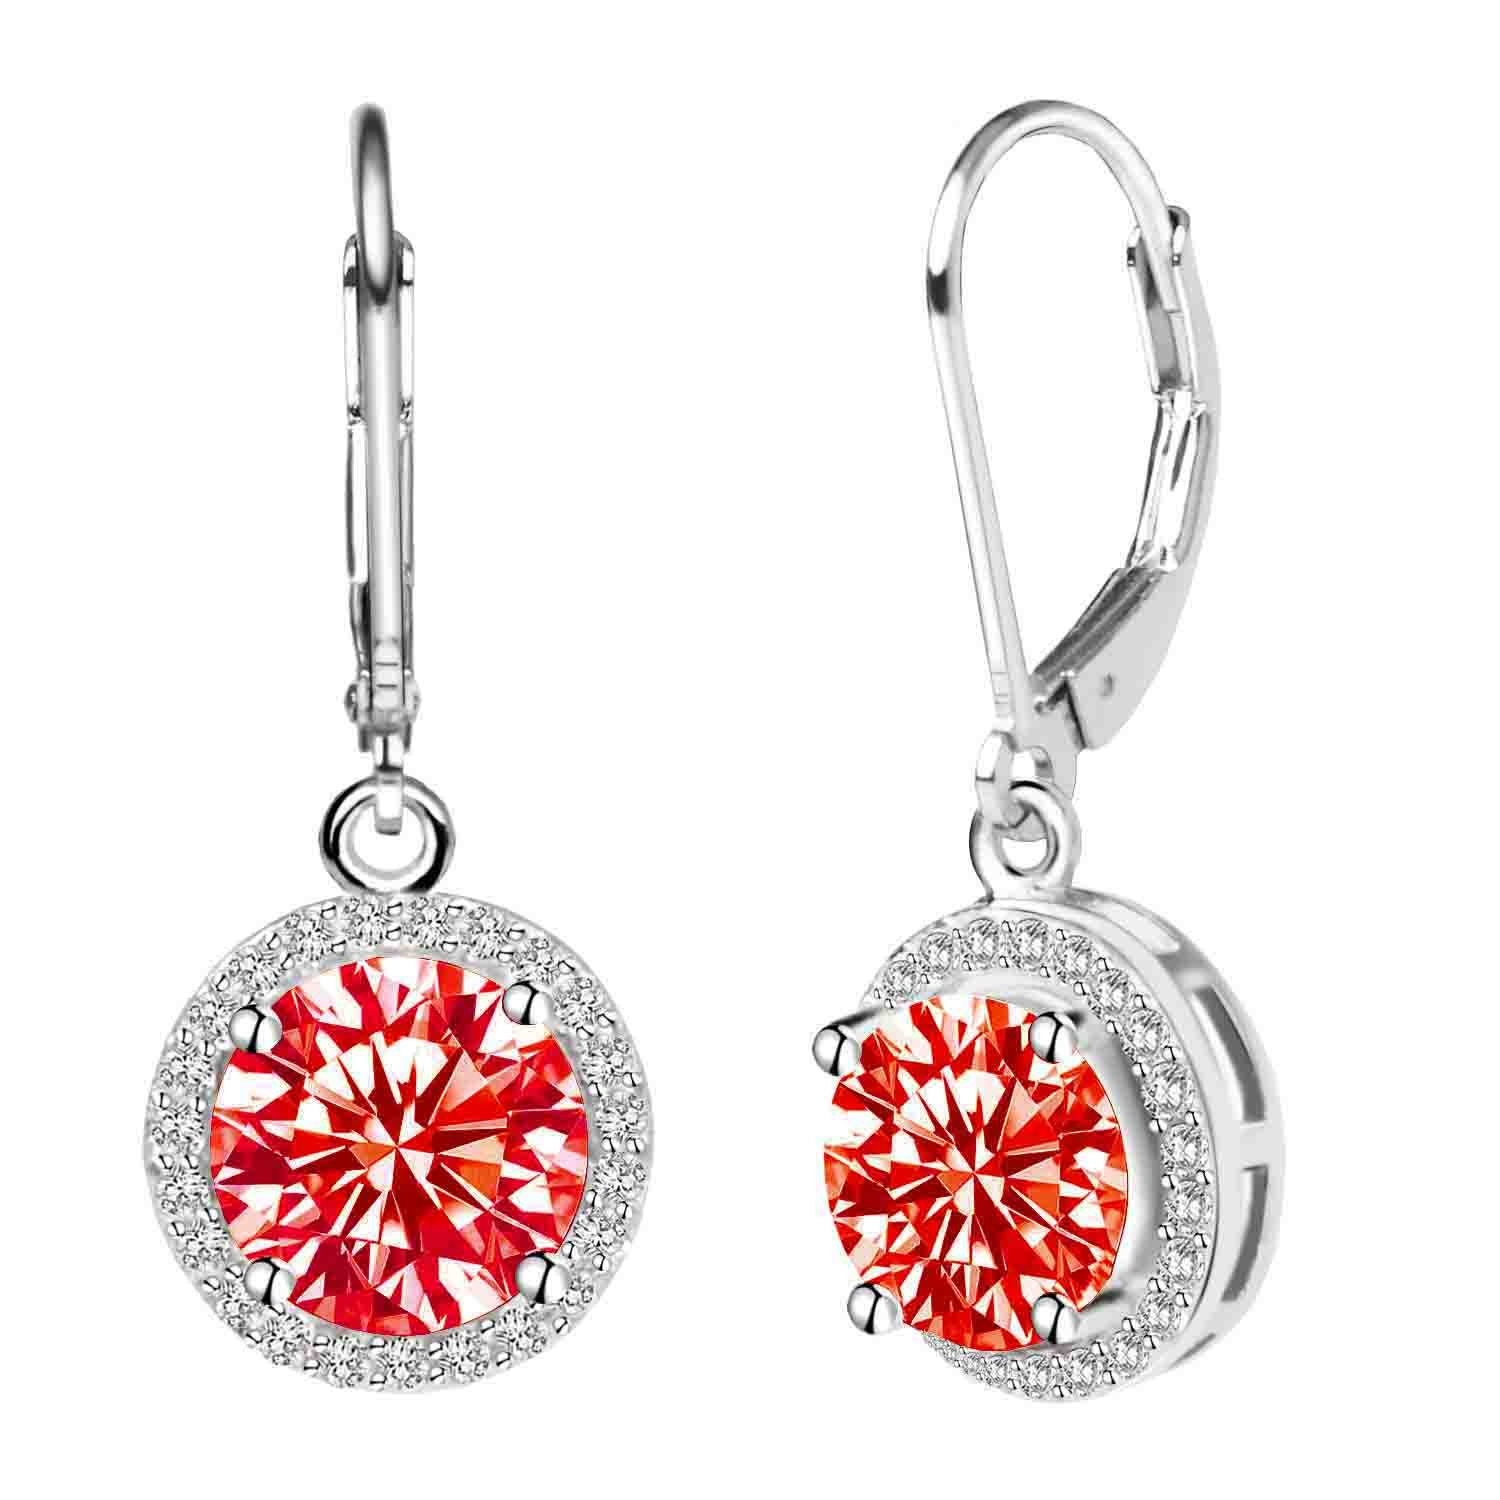 Jane Stone Women's 925 Sterling Silver Leverback Round Halo Earrings with Cubic Zirconia EnyaJewelry E0076219I40-JS